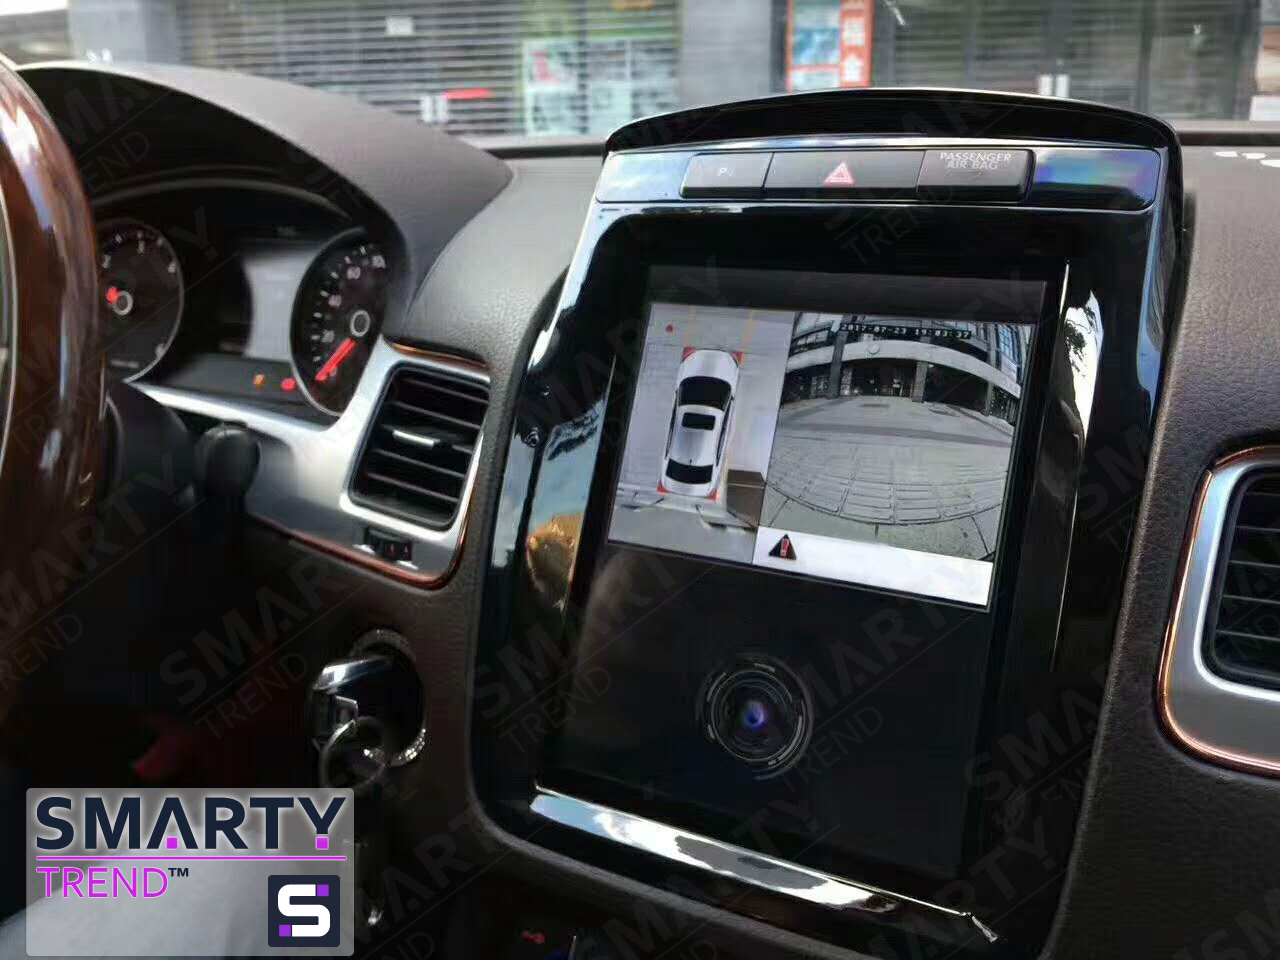 SMARTY Trend head device overview for Volkswagen Touareg